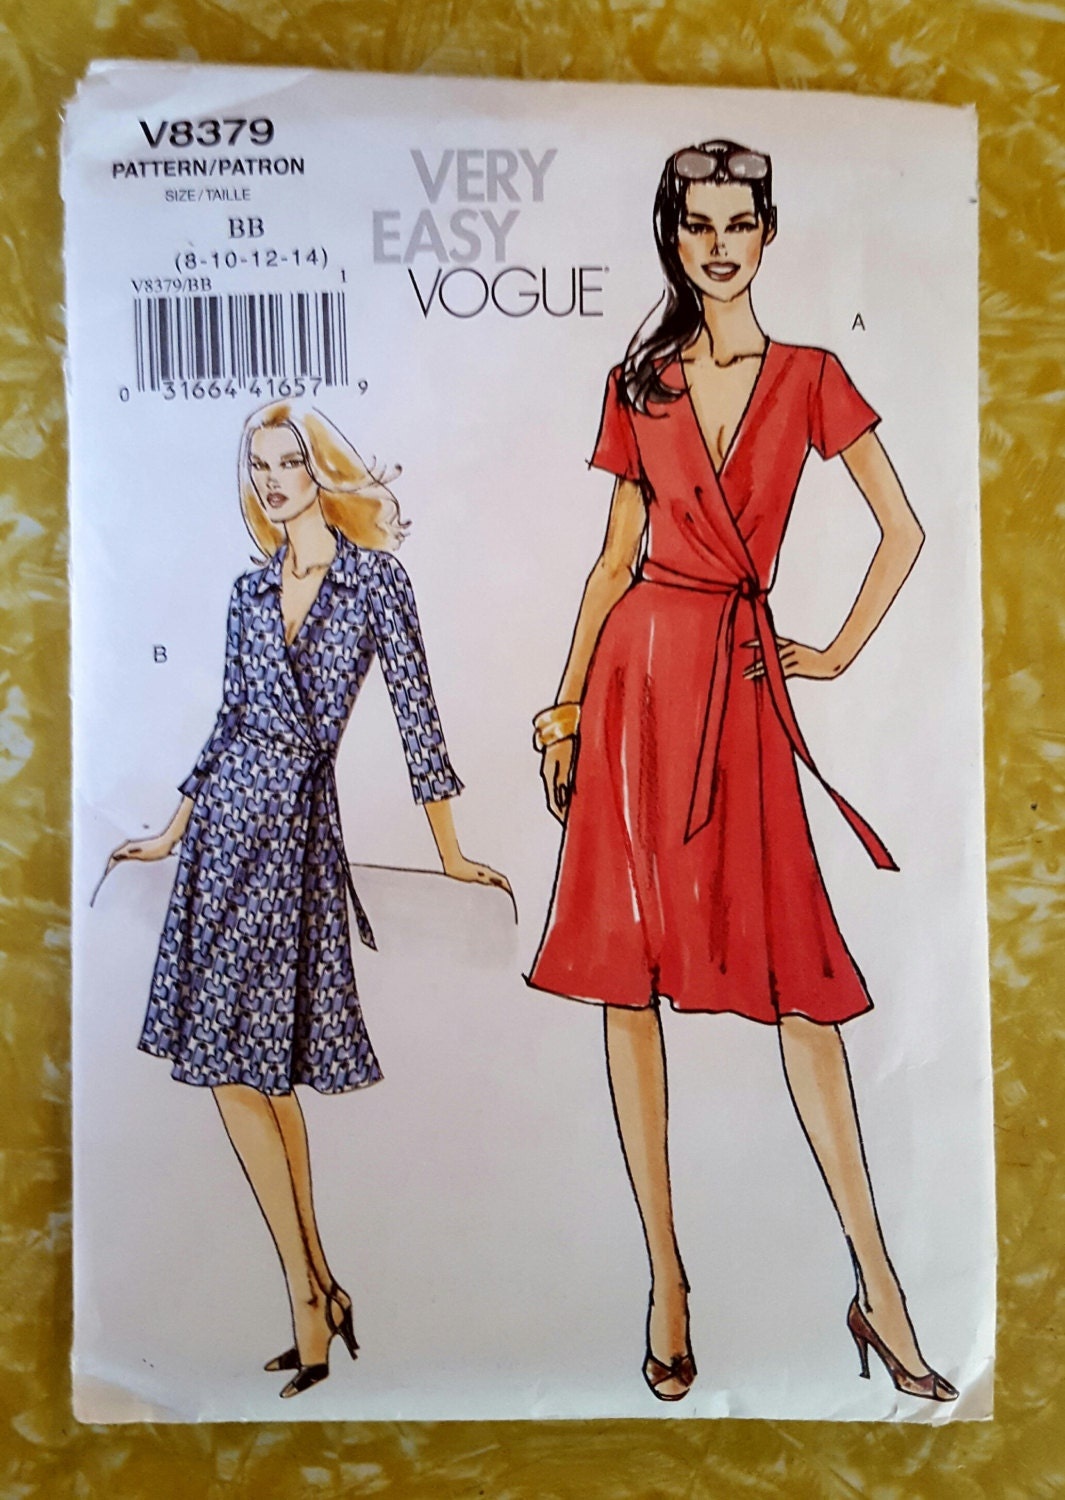 Vogue V8379 Very Easy Wrap Dress Sewing Pattern Misses